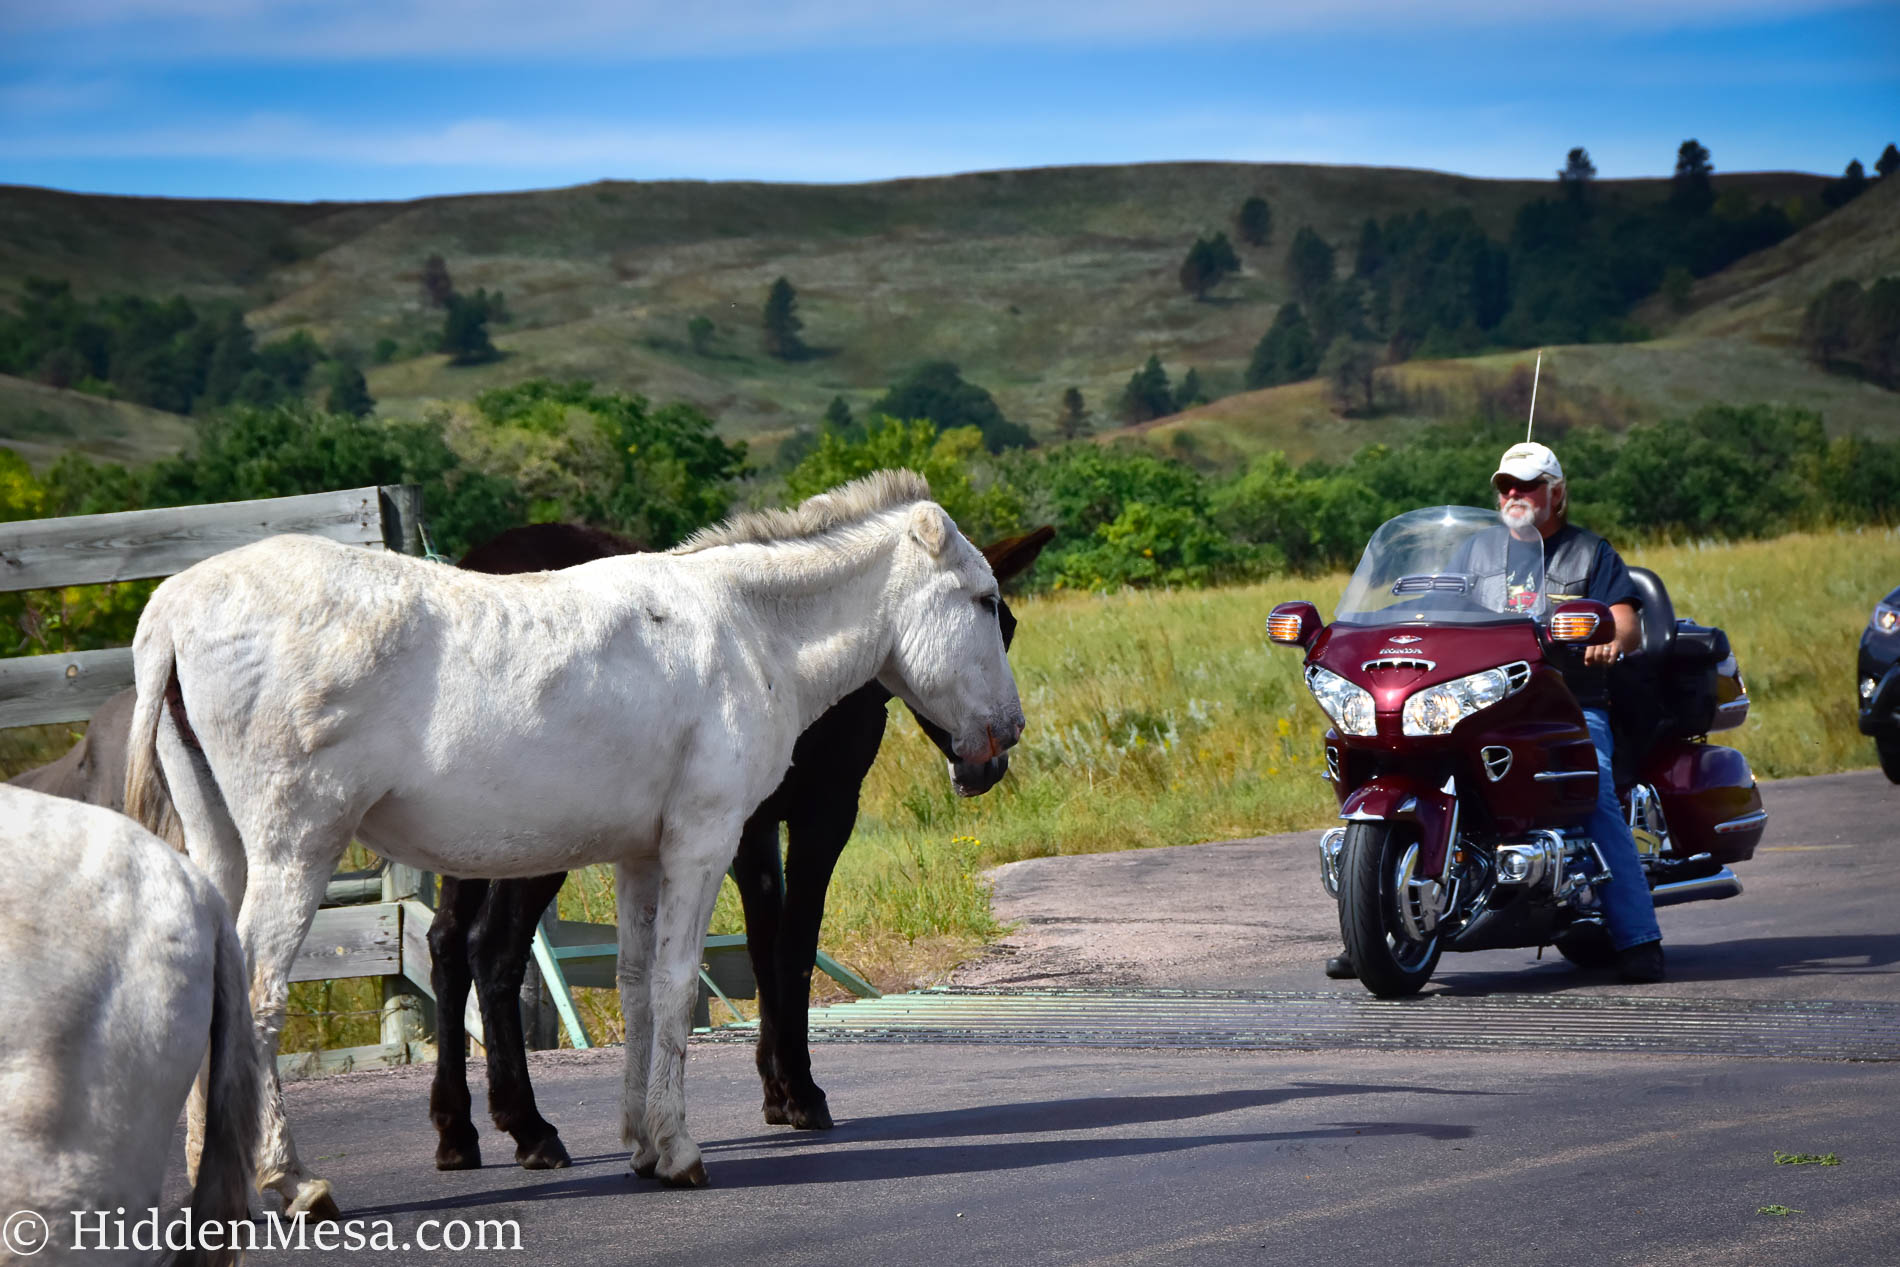 Burros and motorcycle